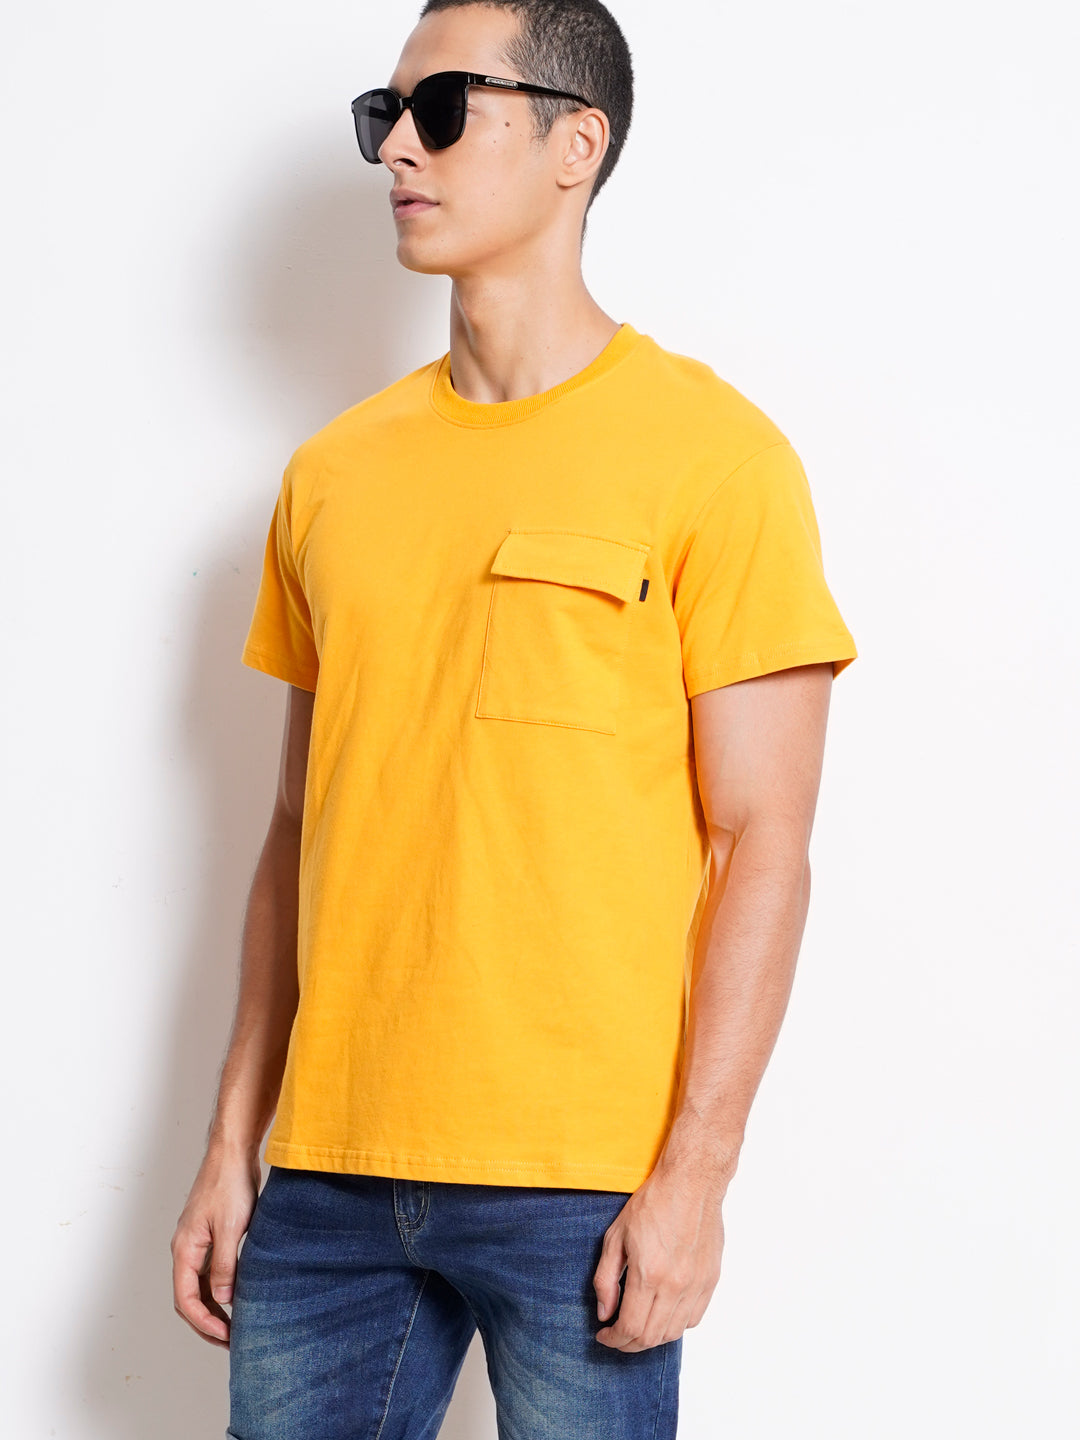 Men Short Sleeve T-Shirt With Pocket - Yellow - XGM20H2371